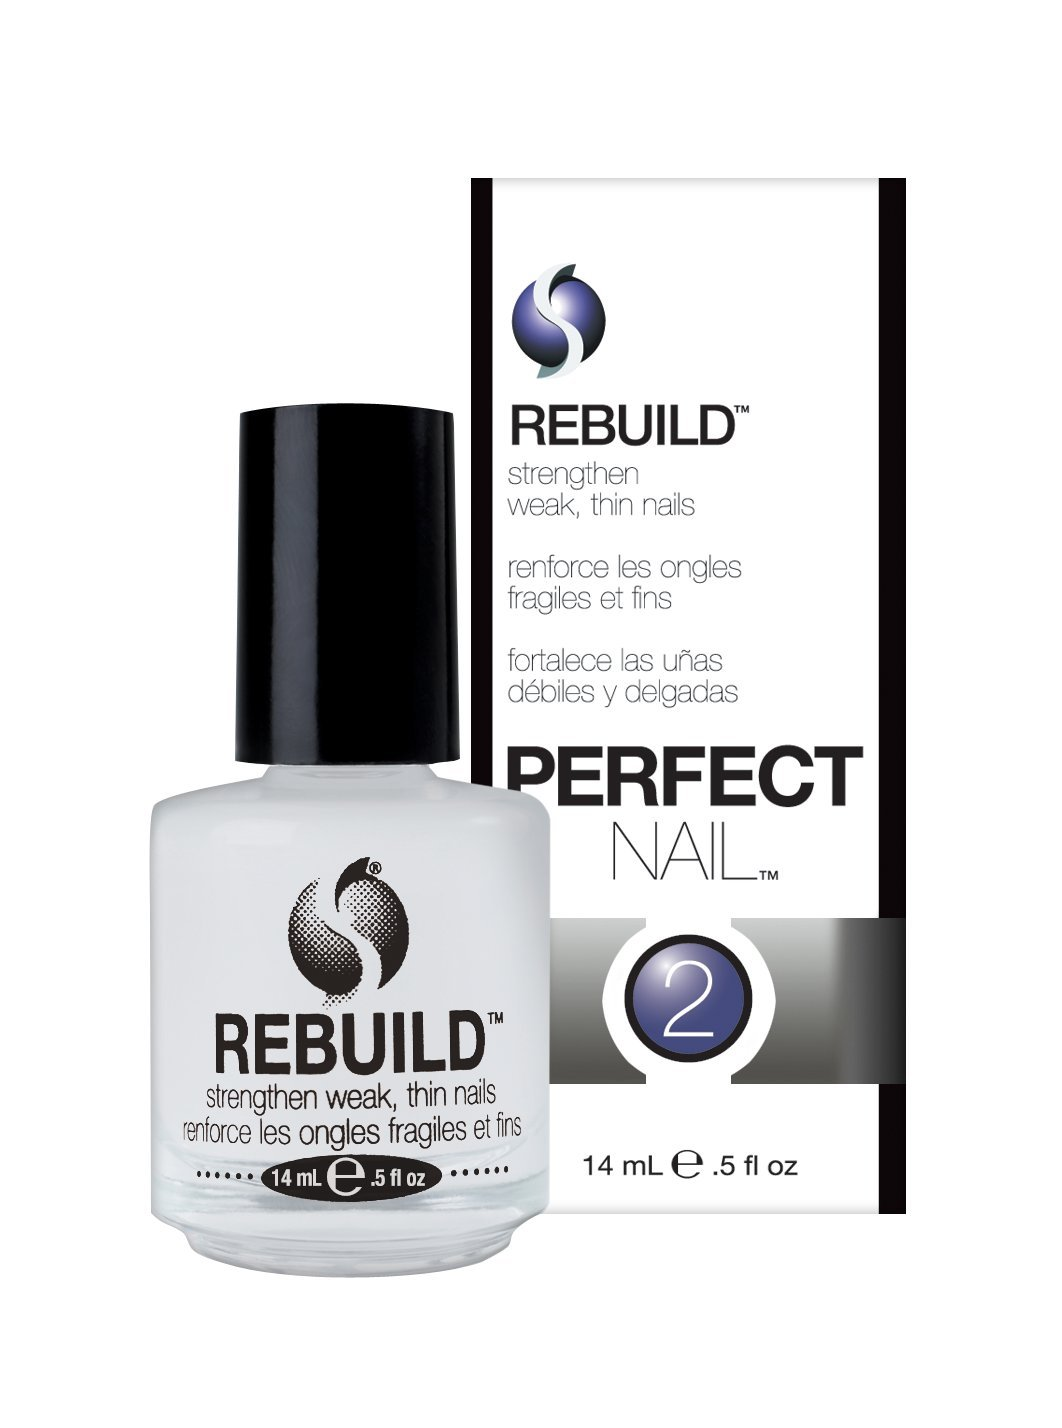 Seche Rebuild Nail Strengthener, Translucent, 14 Milliliters 83269